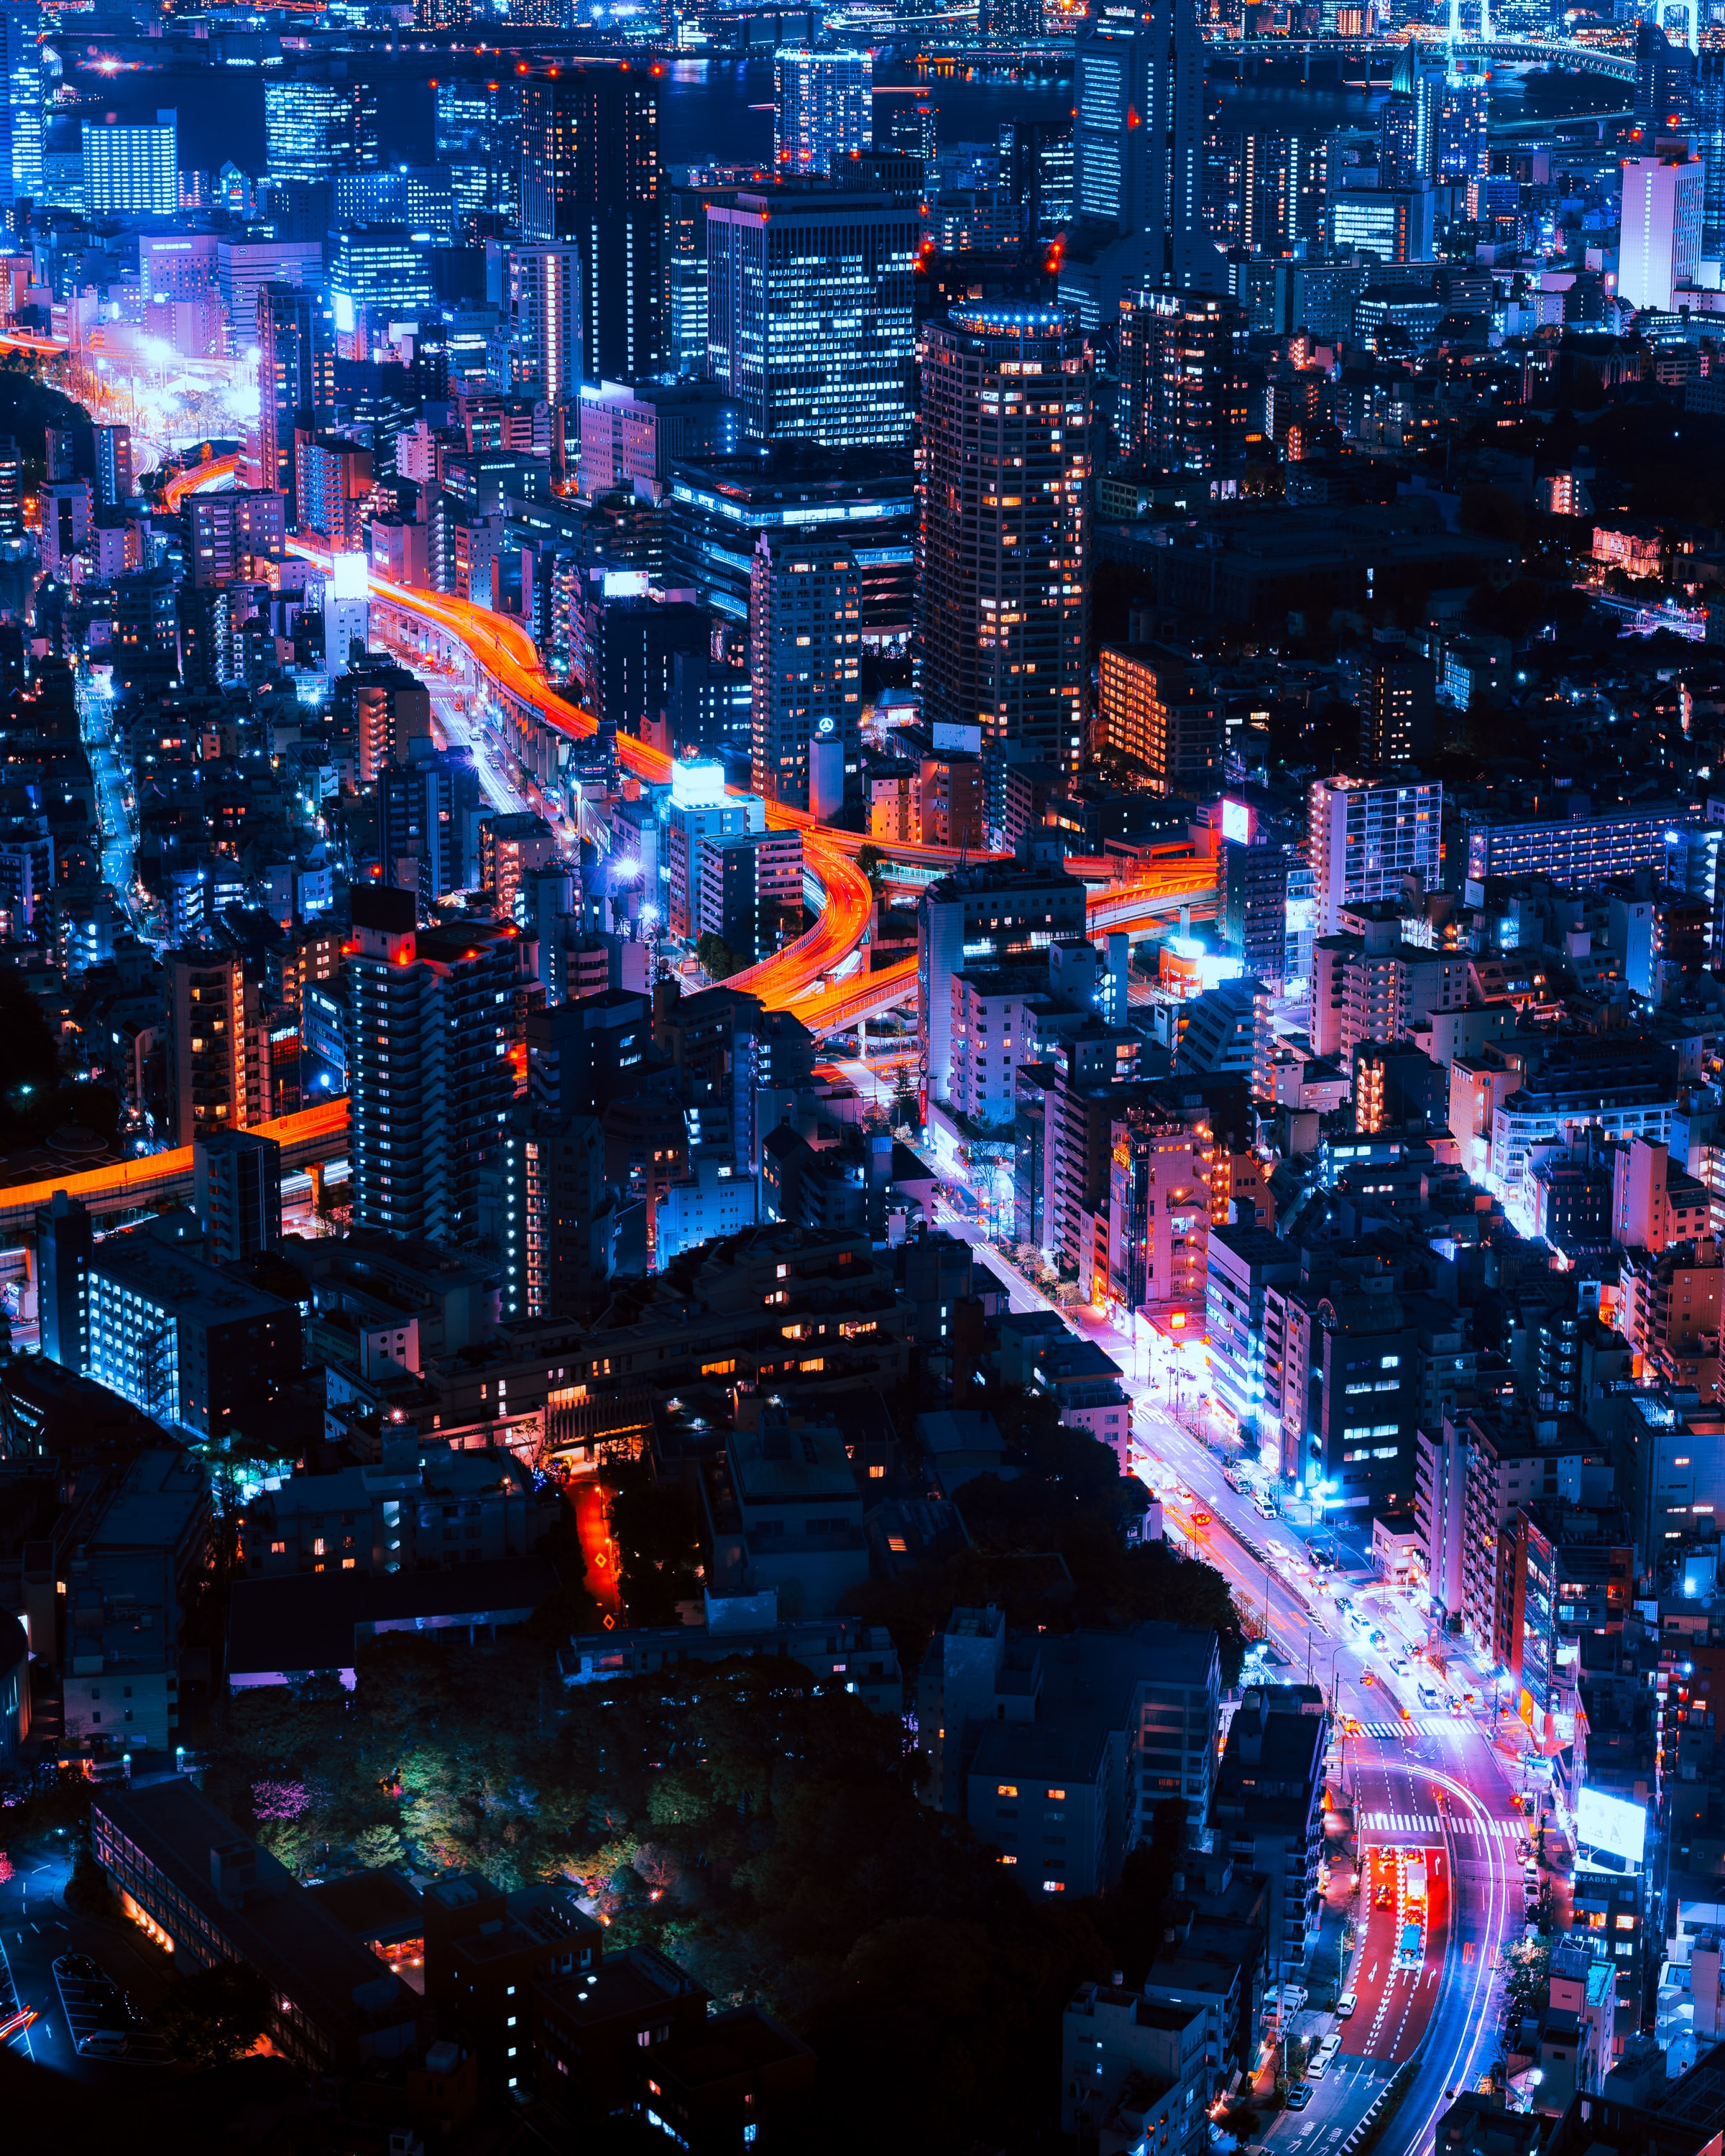 100 Cyberpunk Wallpapers Hd Download Free Images On Unsplash